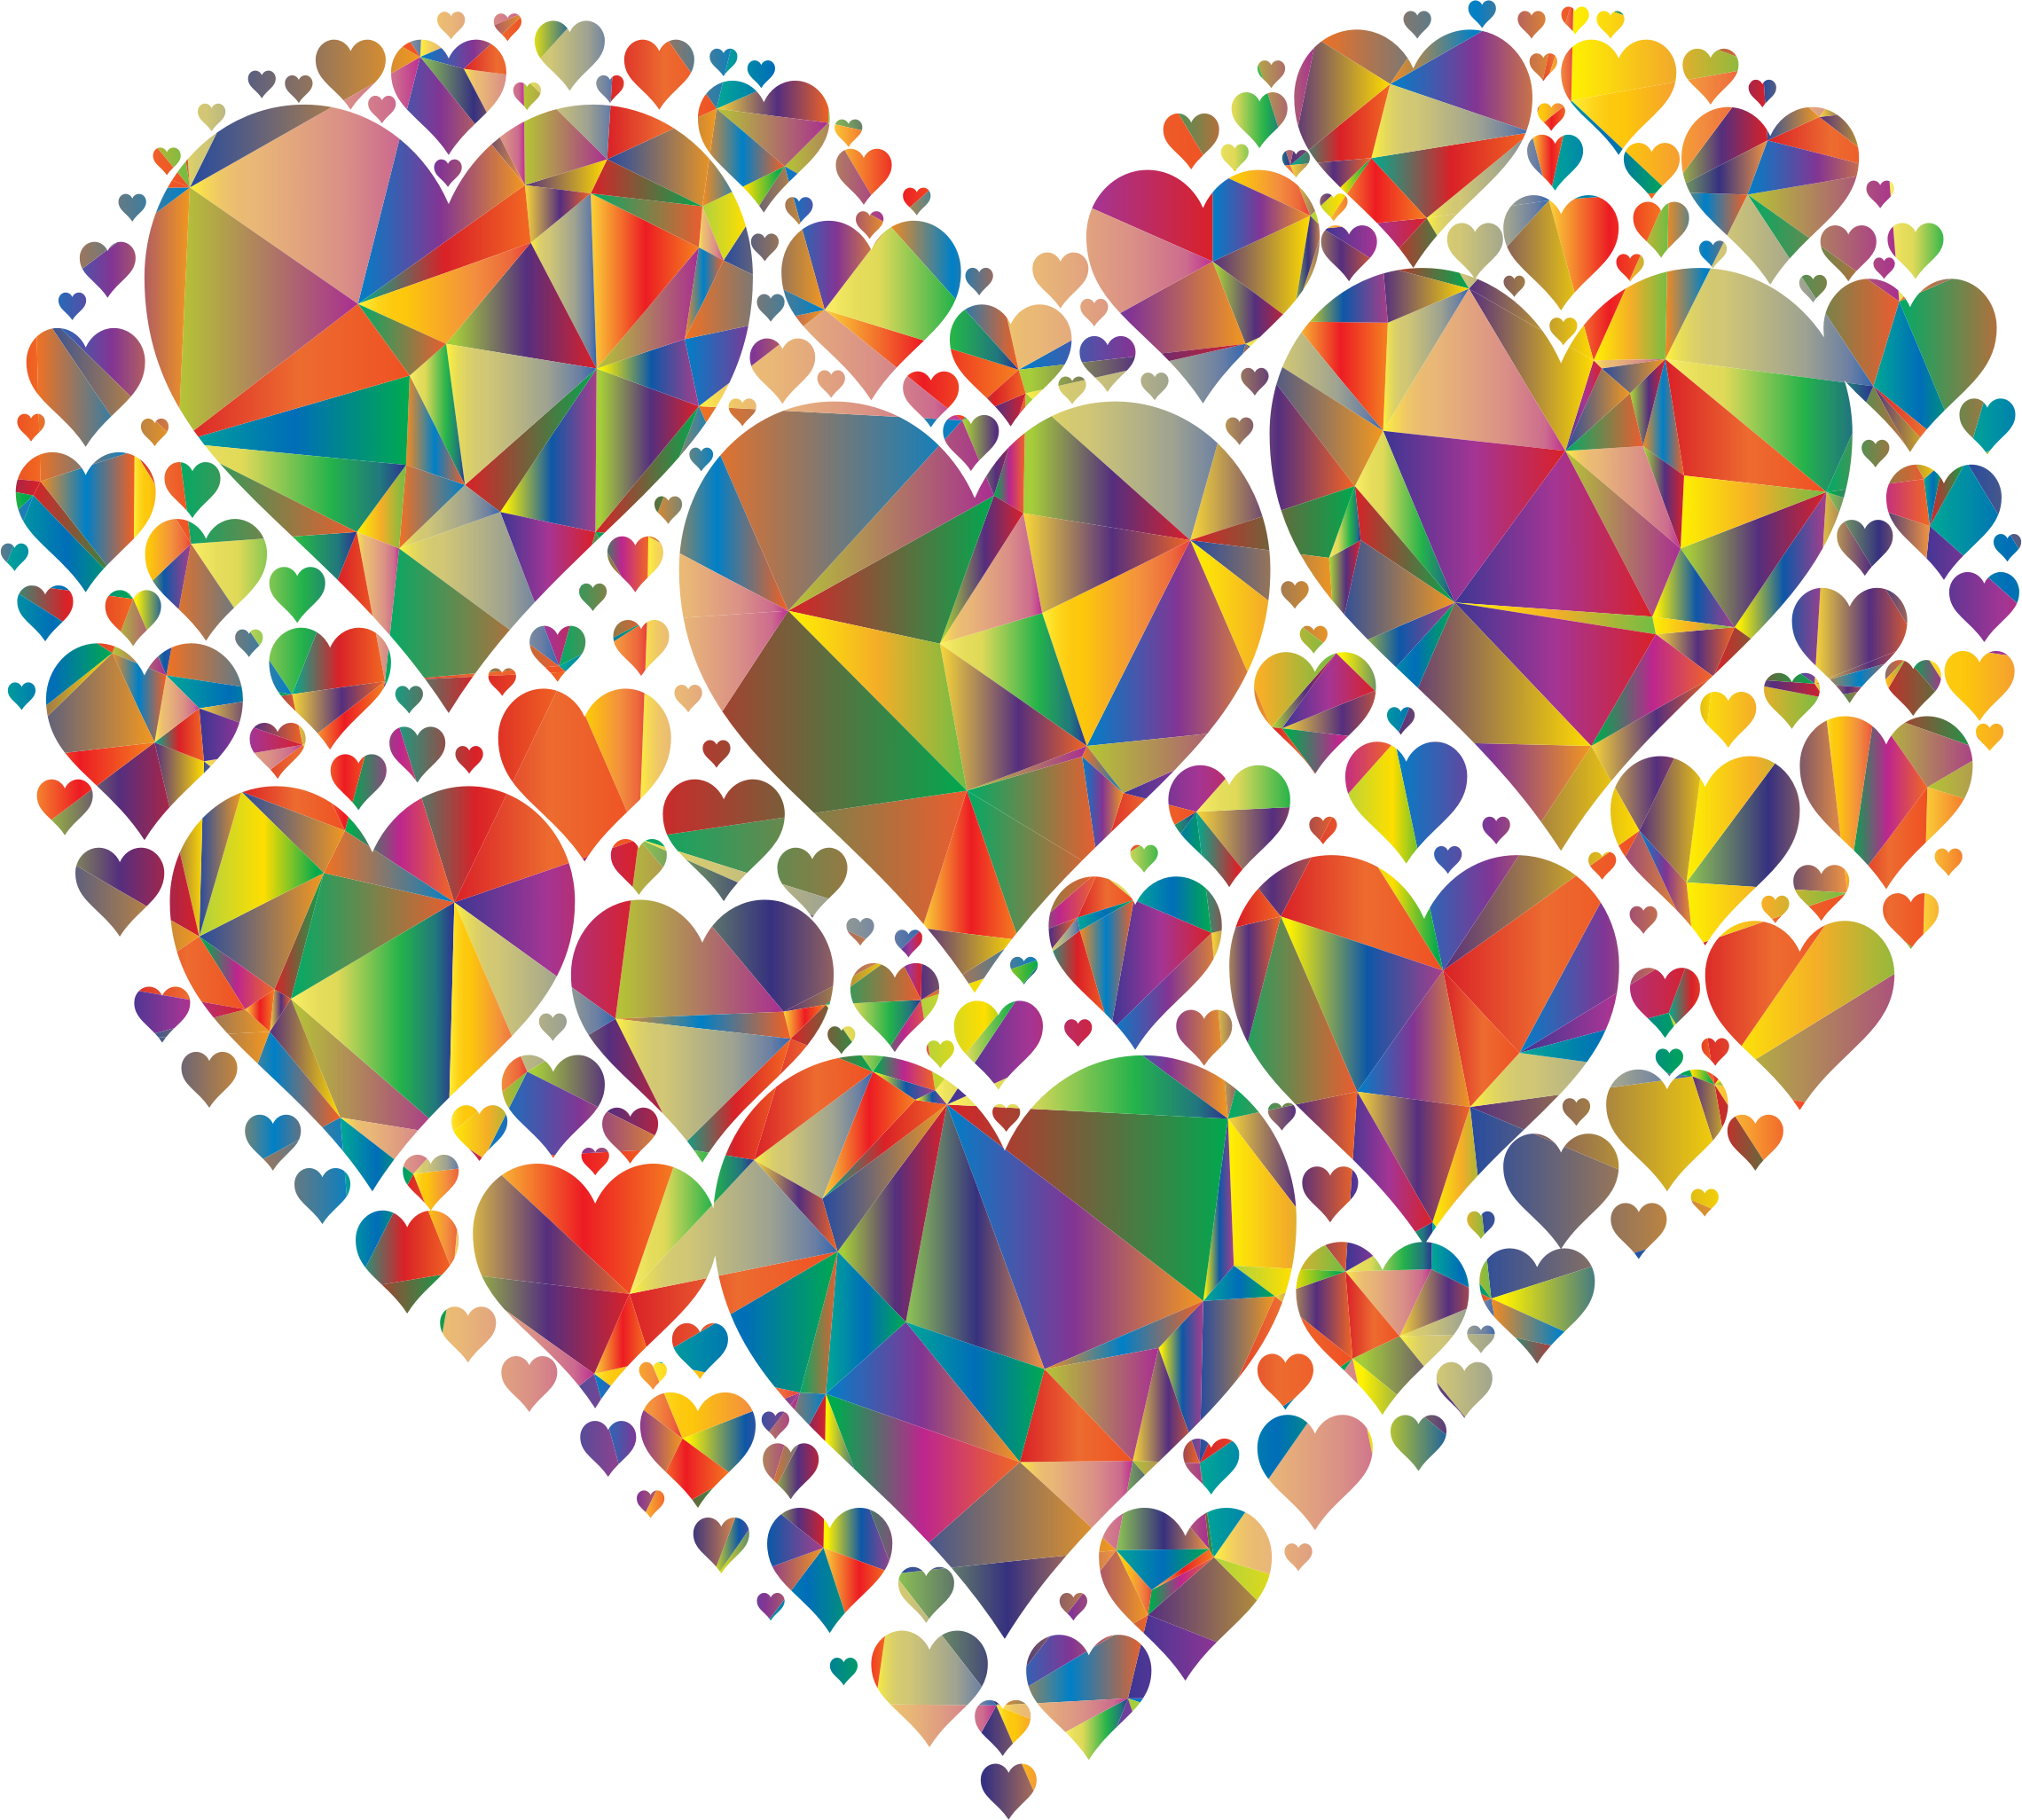 Low Poly Hearts In Heart by GDJ